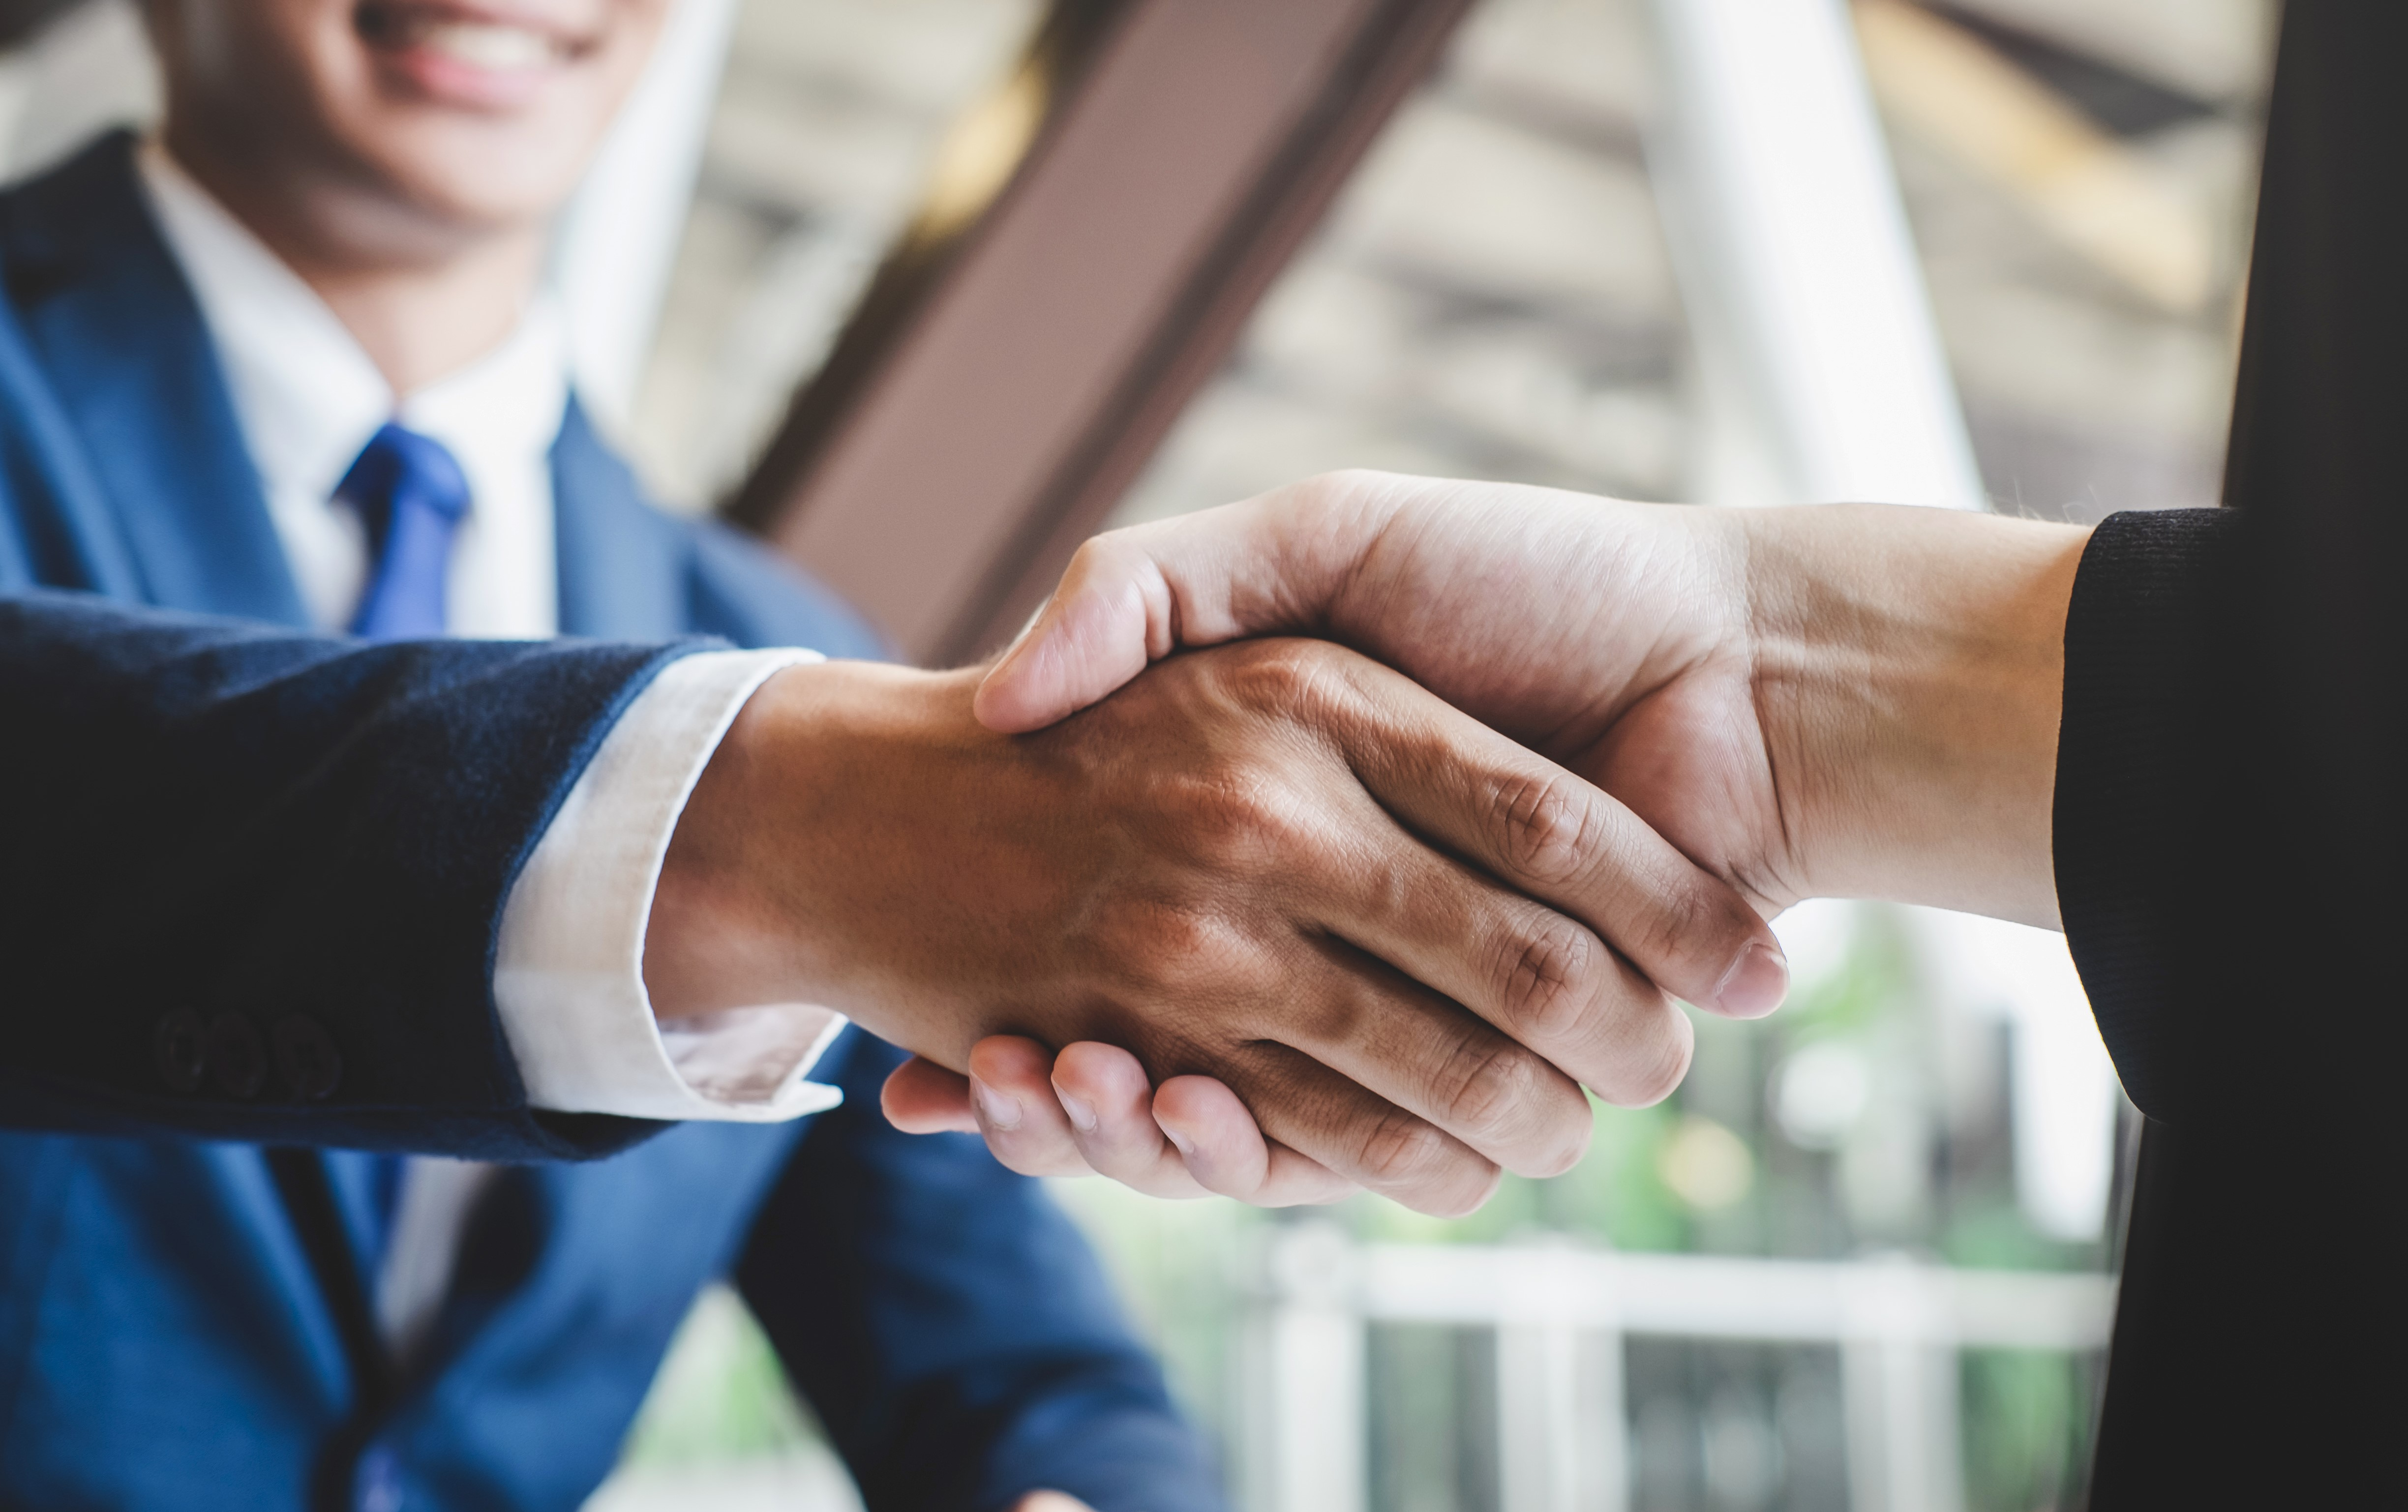 How to Build a Trust Relationship with Your Consignee